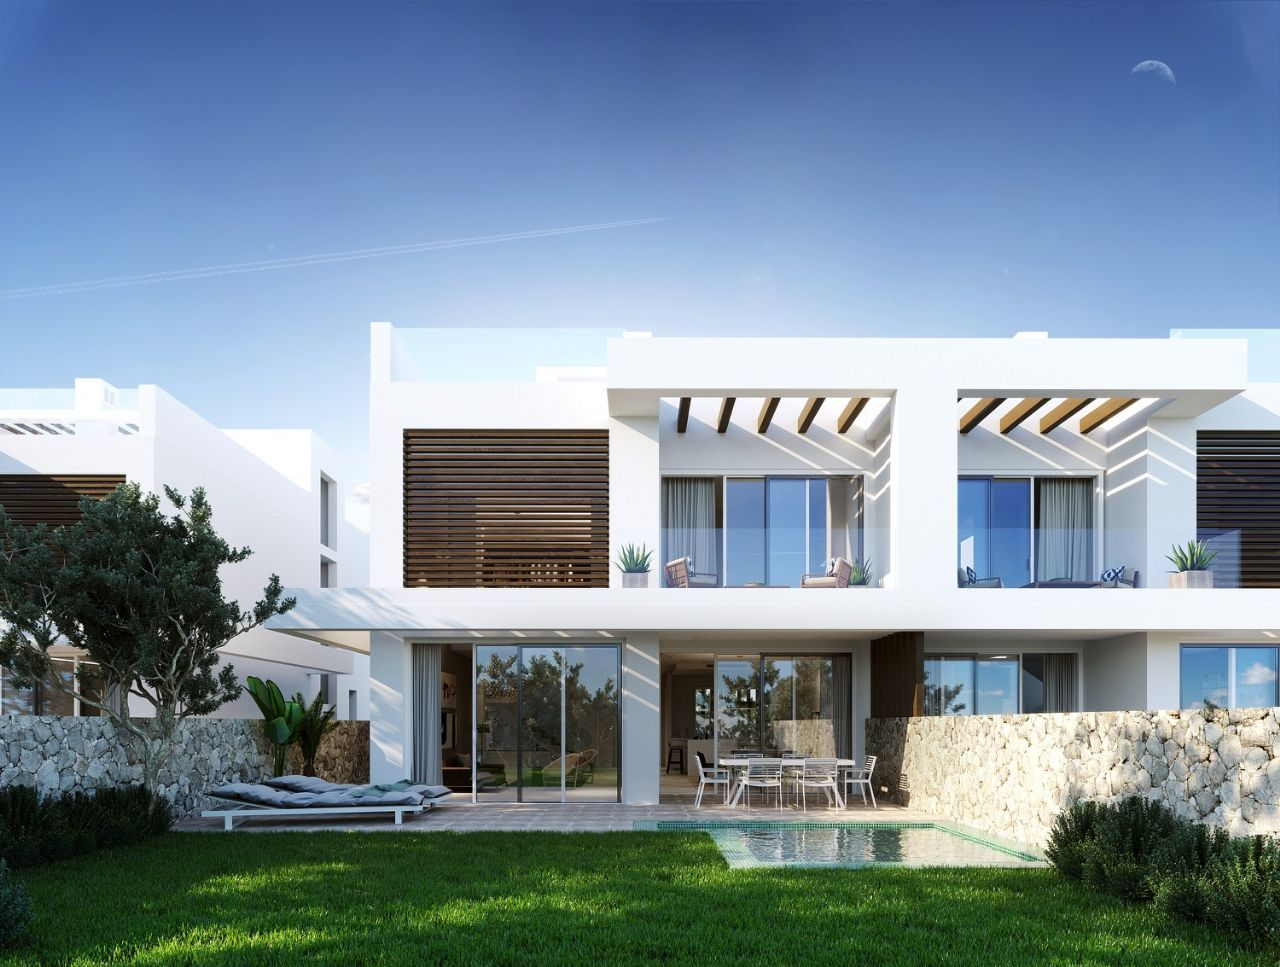 LUX0283: Semi Detached Villa in Marbella